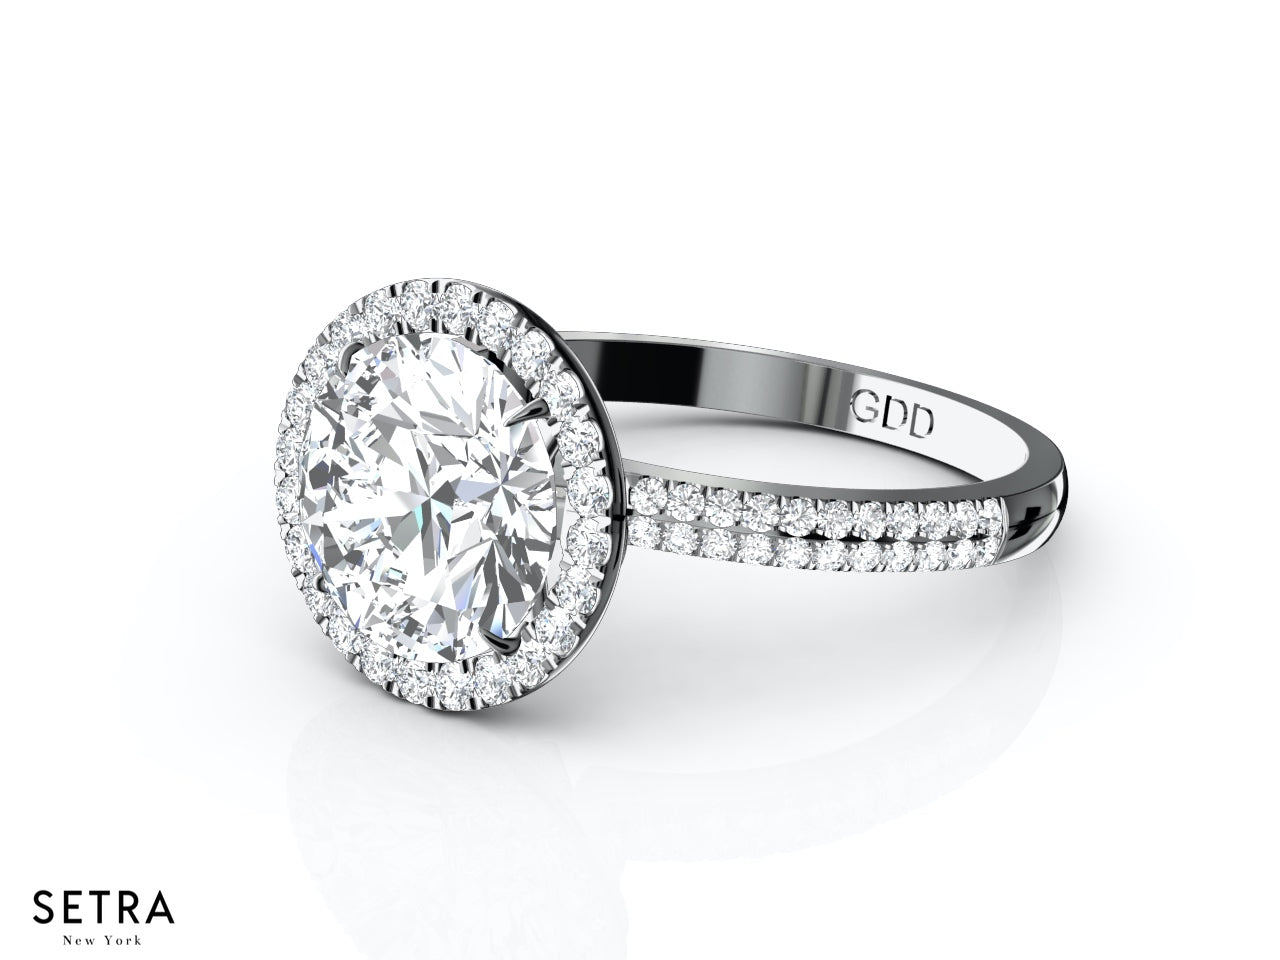 eternity engagement pave products rings nyc micro band diamond delicate collections catherine bands angiel